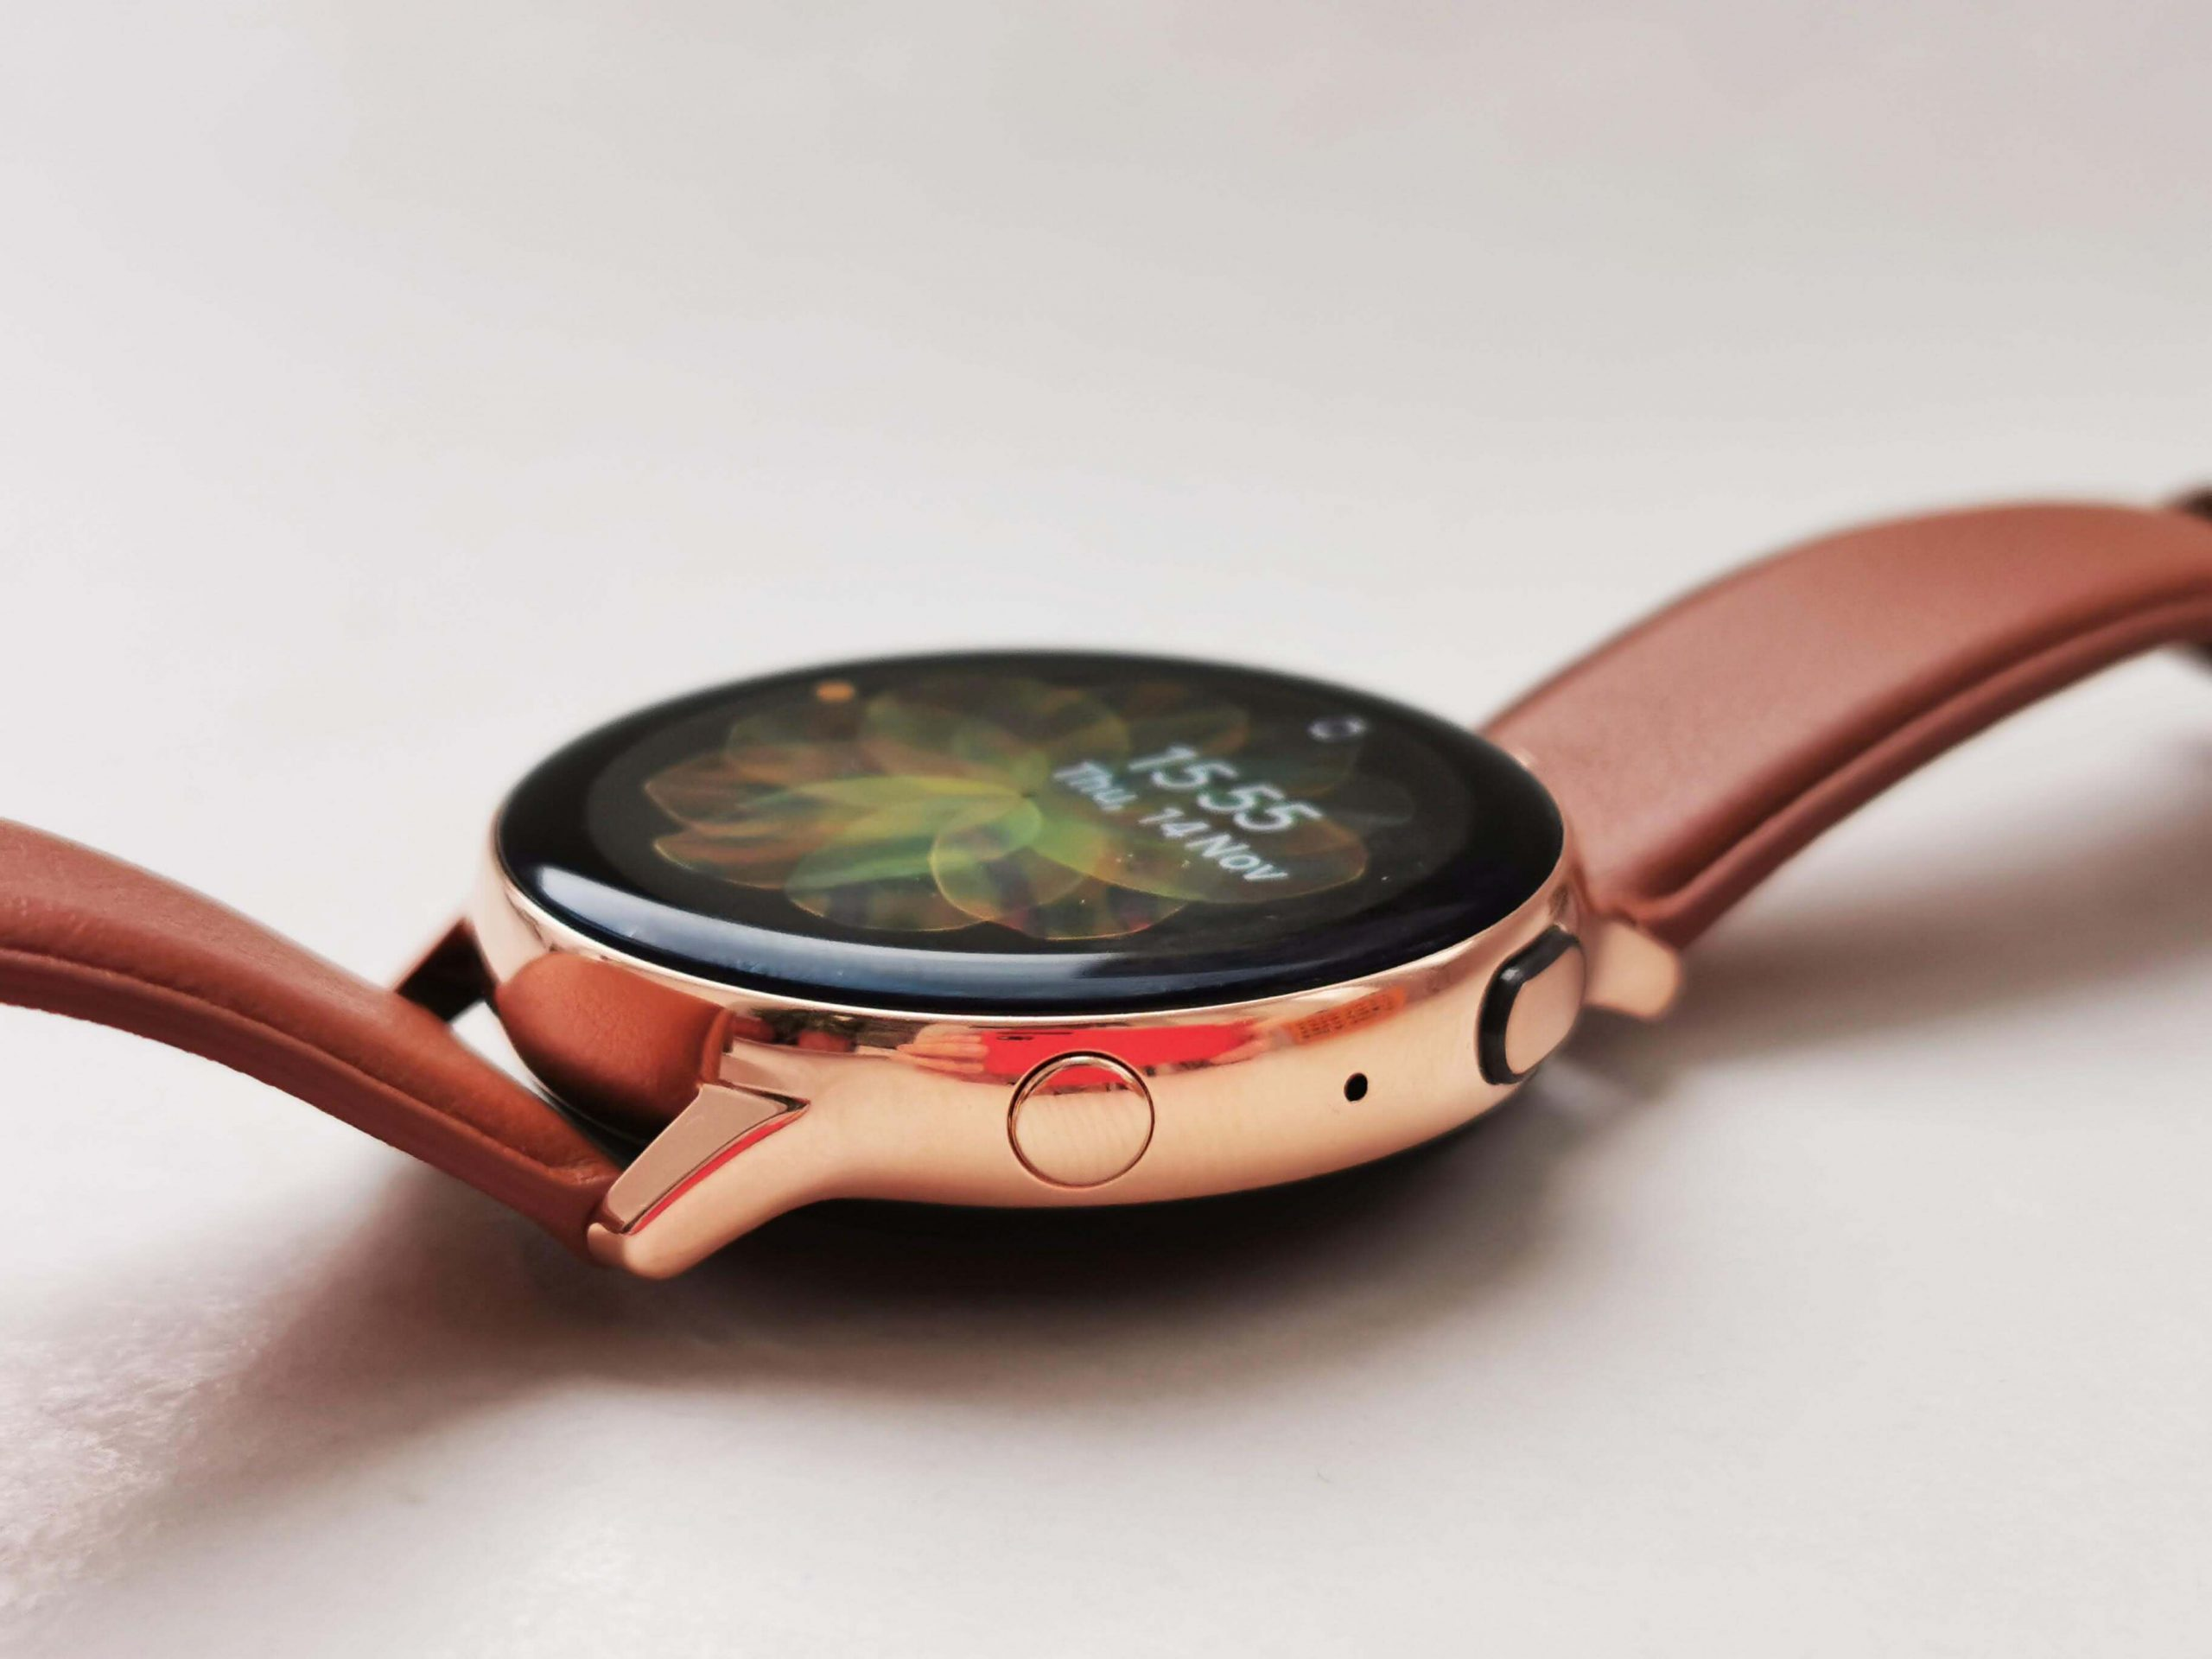 Samsung Galaxy Watch Active 2 Review Romana si Pareri - 7